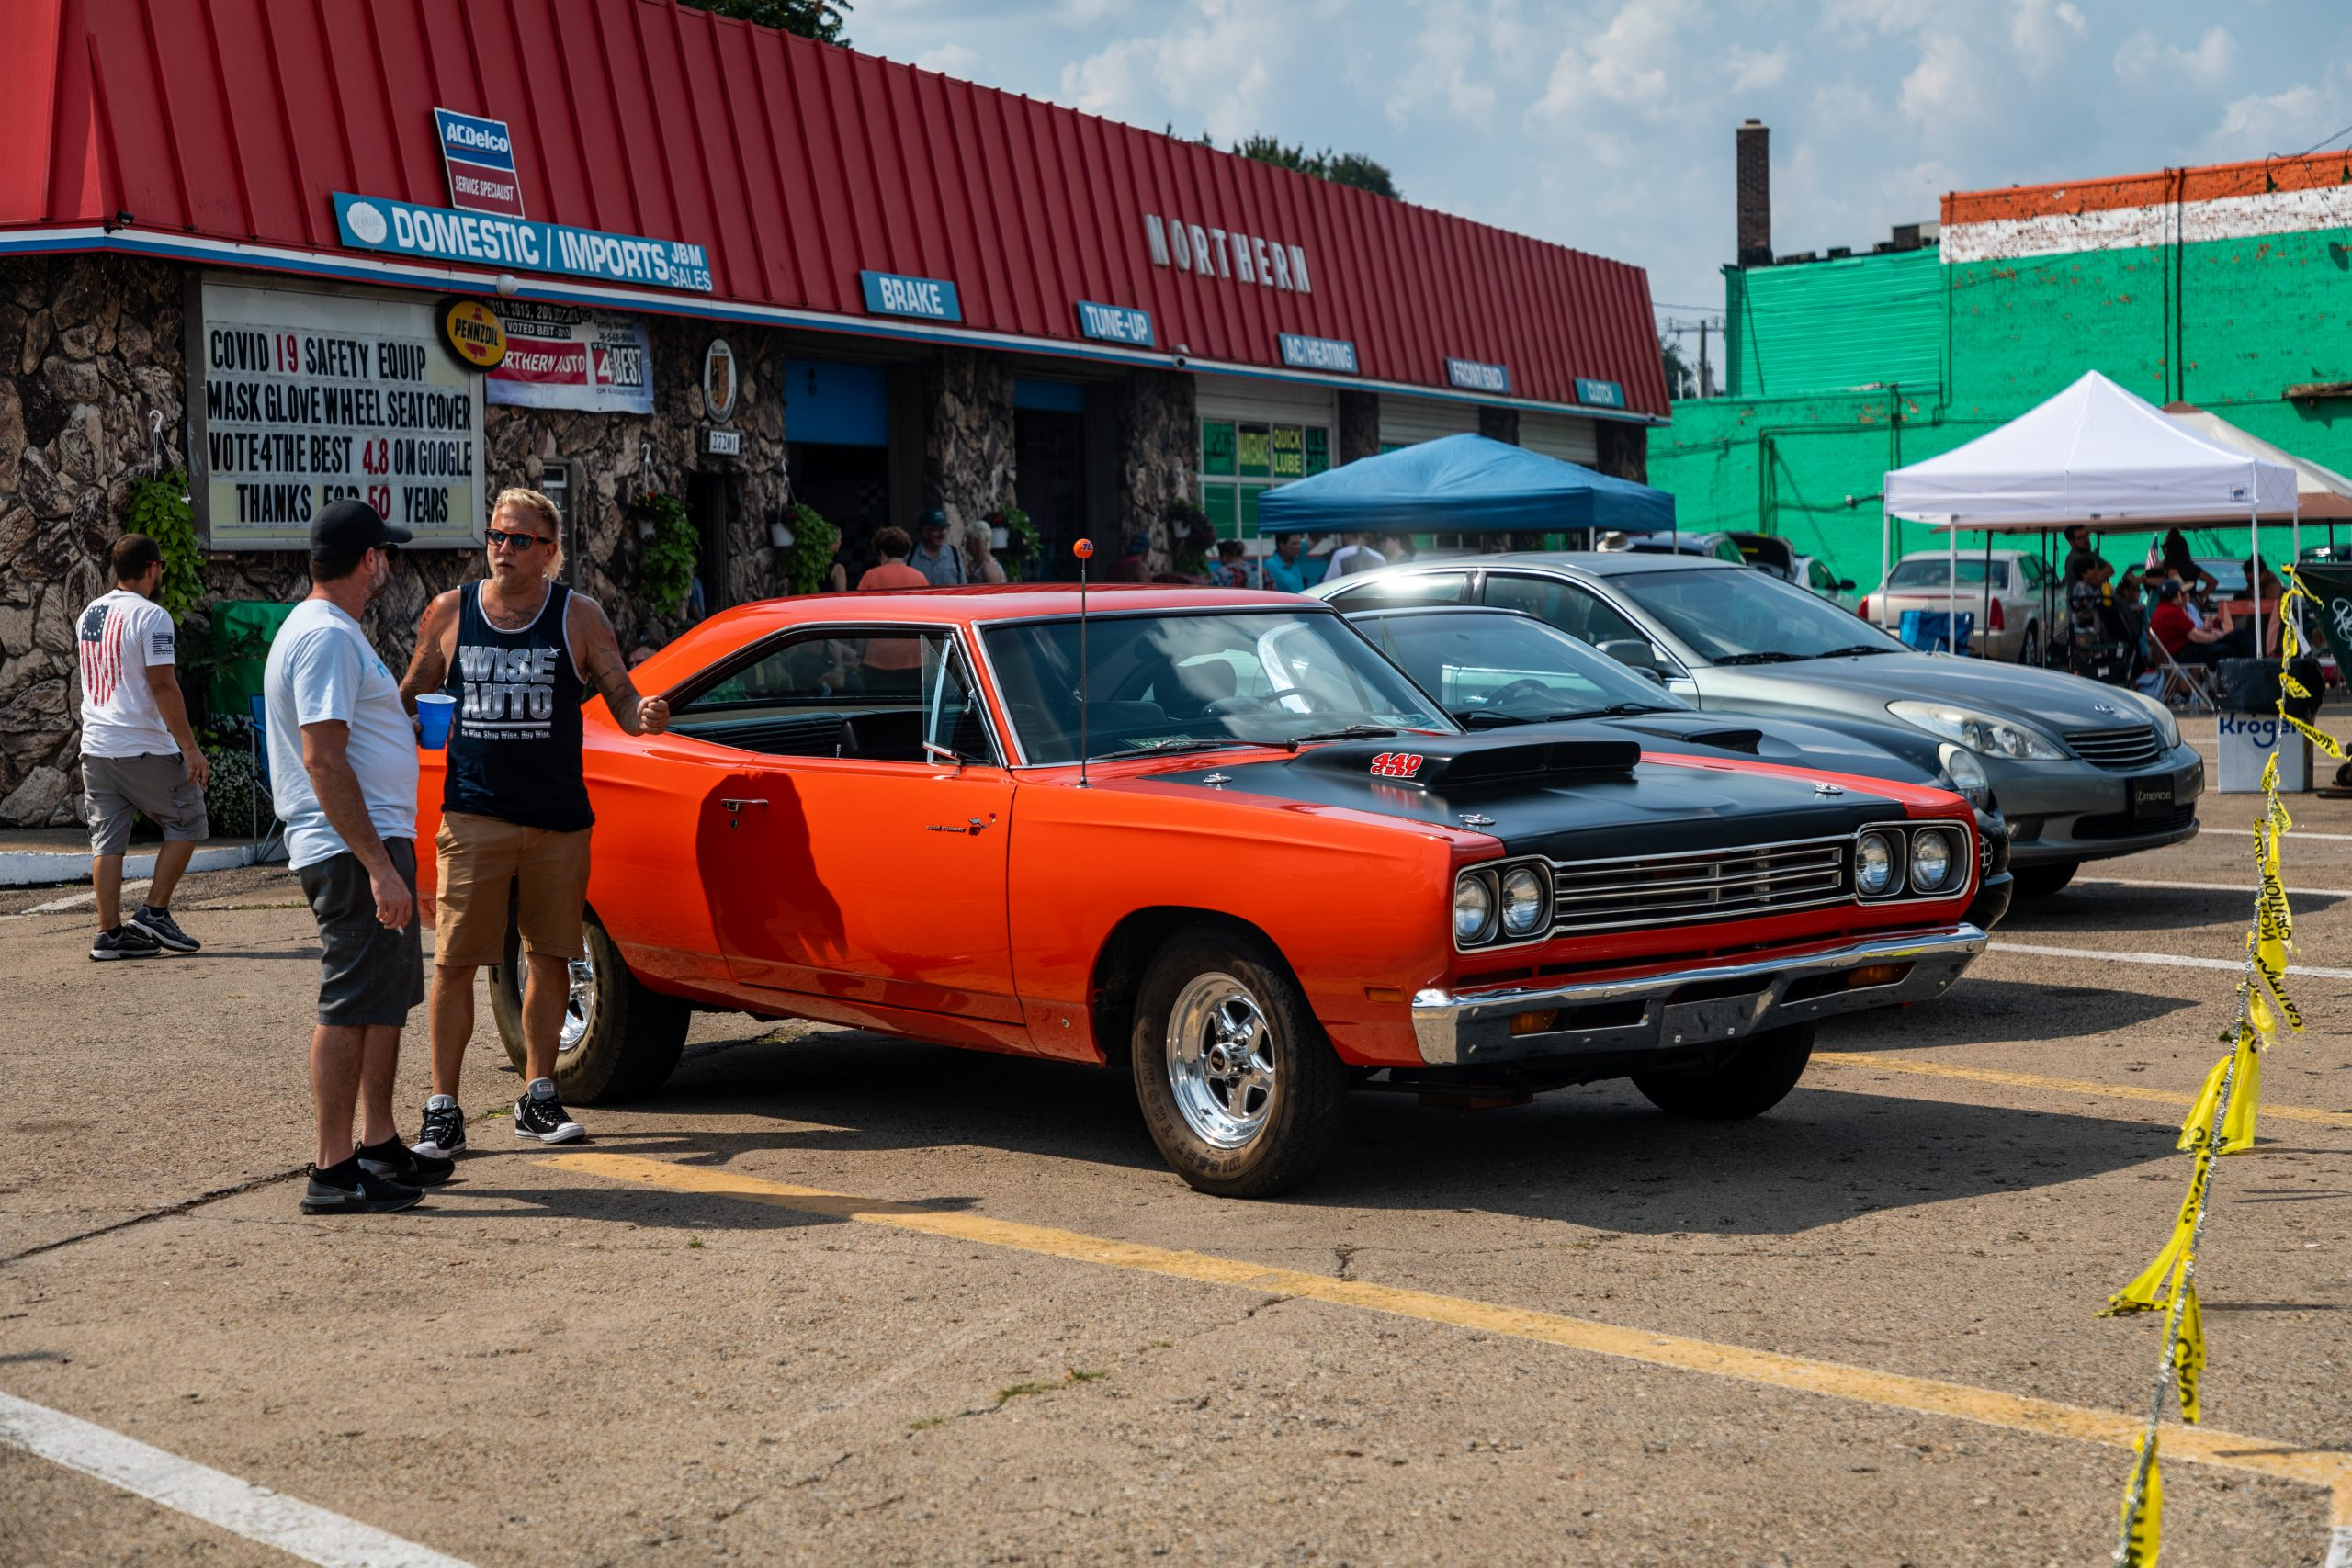 2021 Dream Cruise woodward ave action muscle car patrons